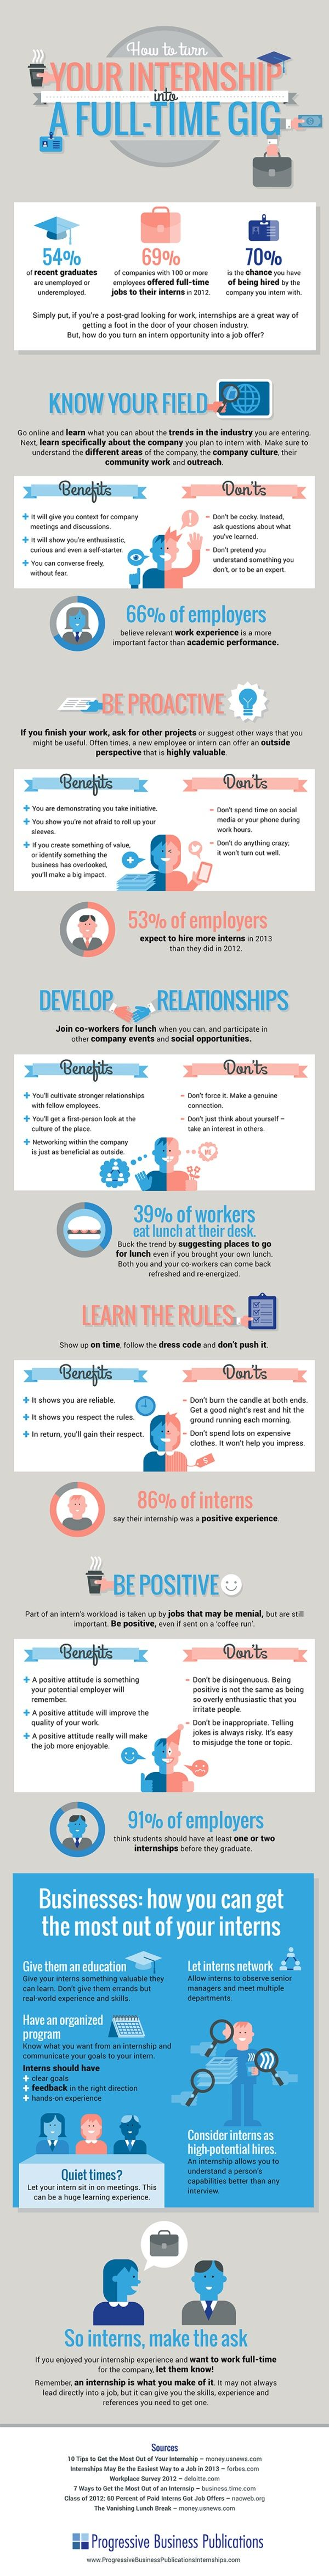 How to Turn Your Internship into a Full Time Job #Infographics — Lightscap3s.com